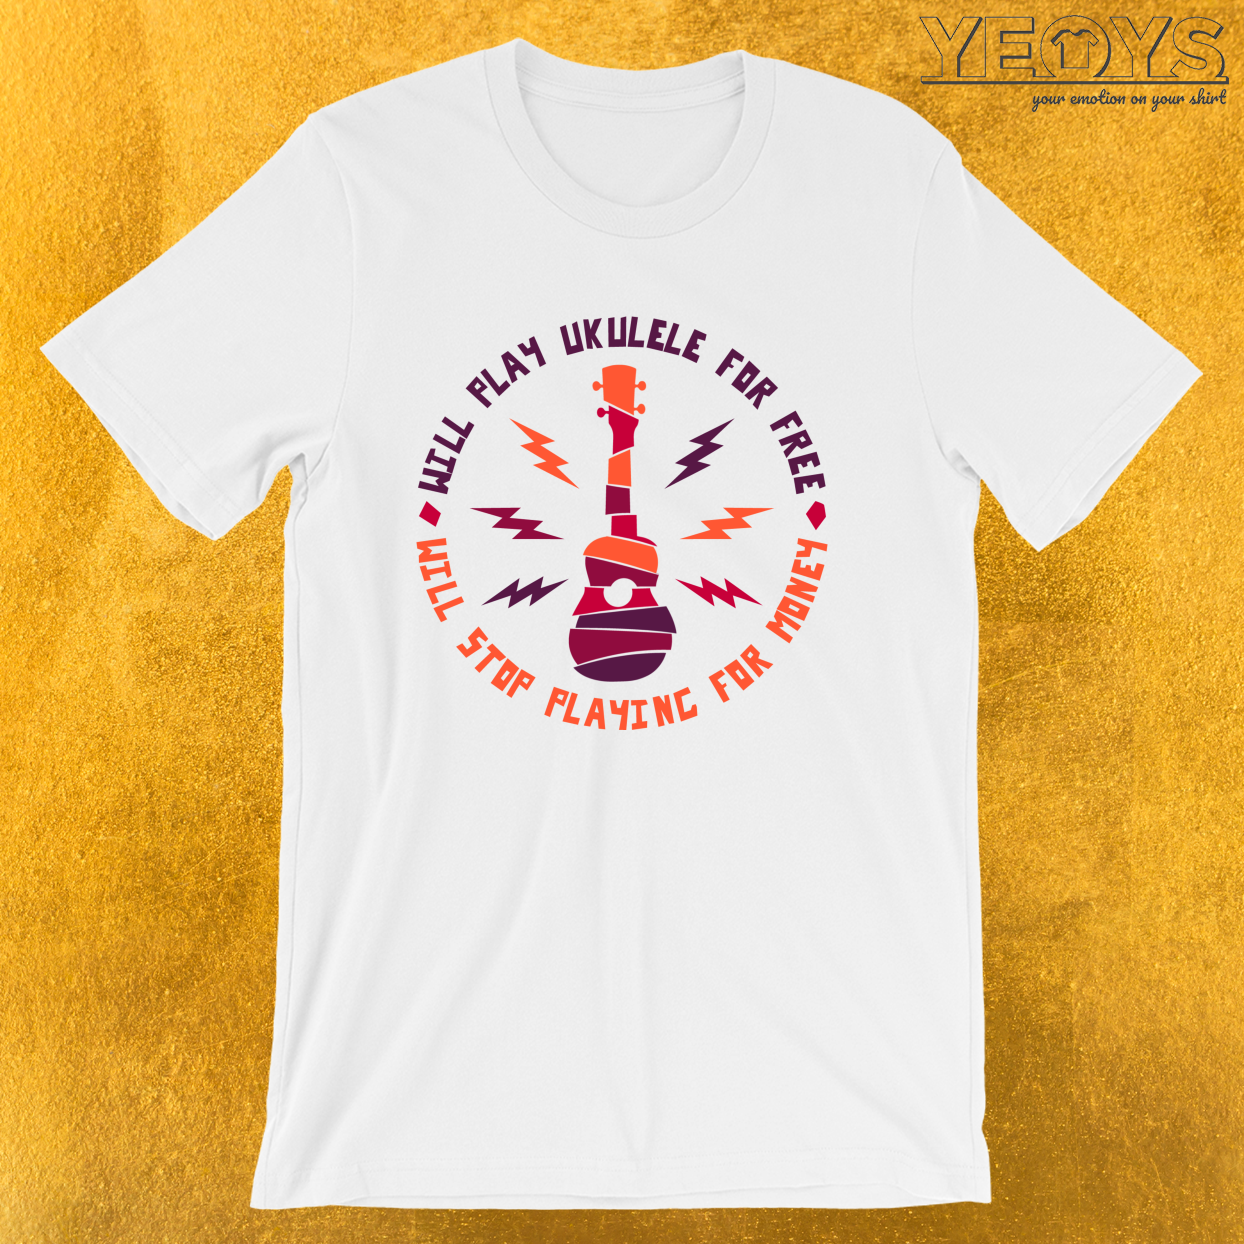 Will Play Ukulele For Free Stop For Money – Ukulele Tee